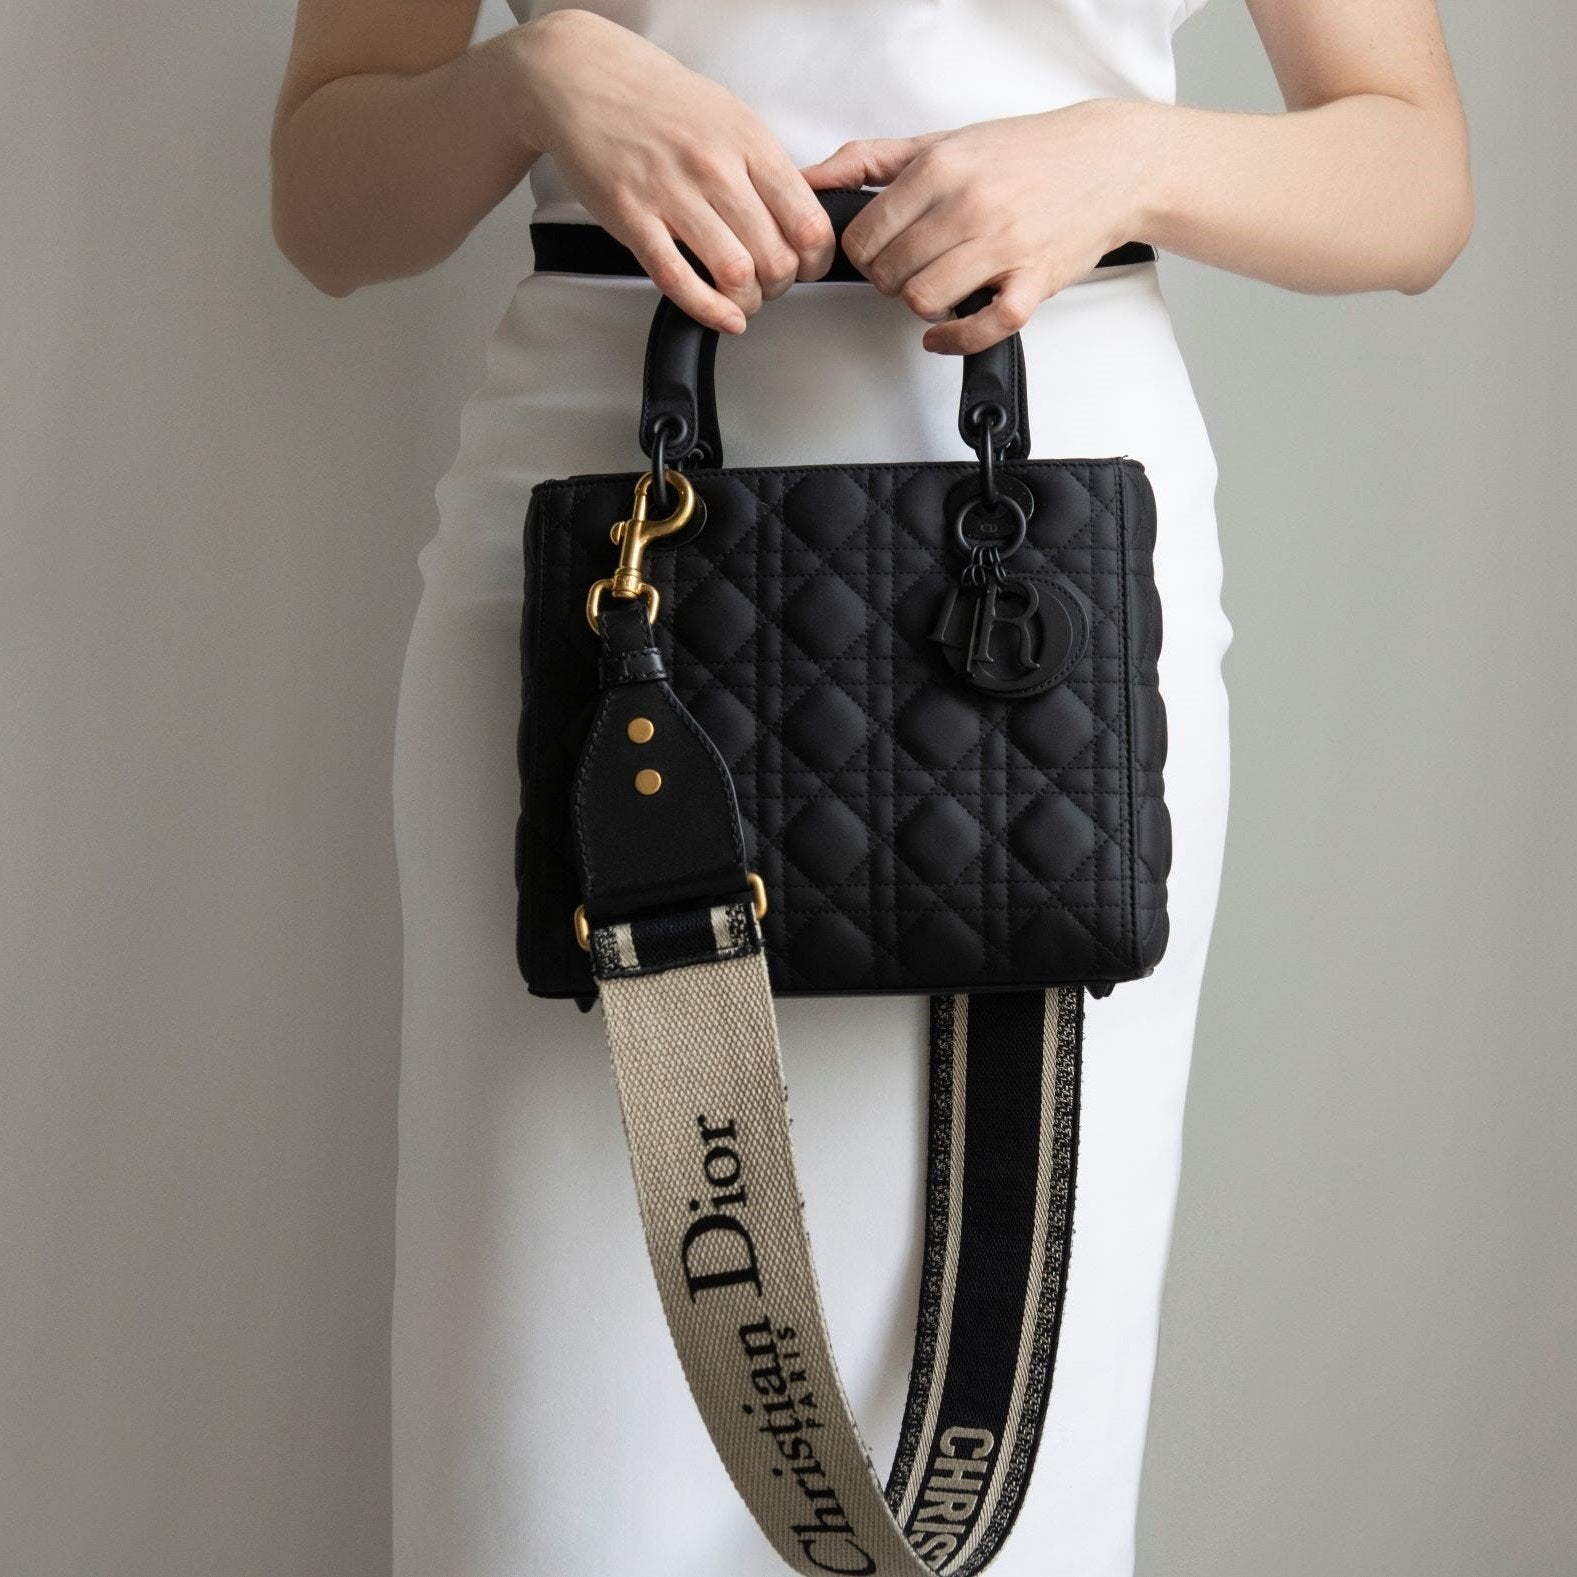 How To Dress Up Your Bag: The Best Designer Bag Accessories Should Straps